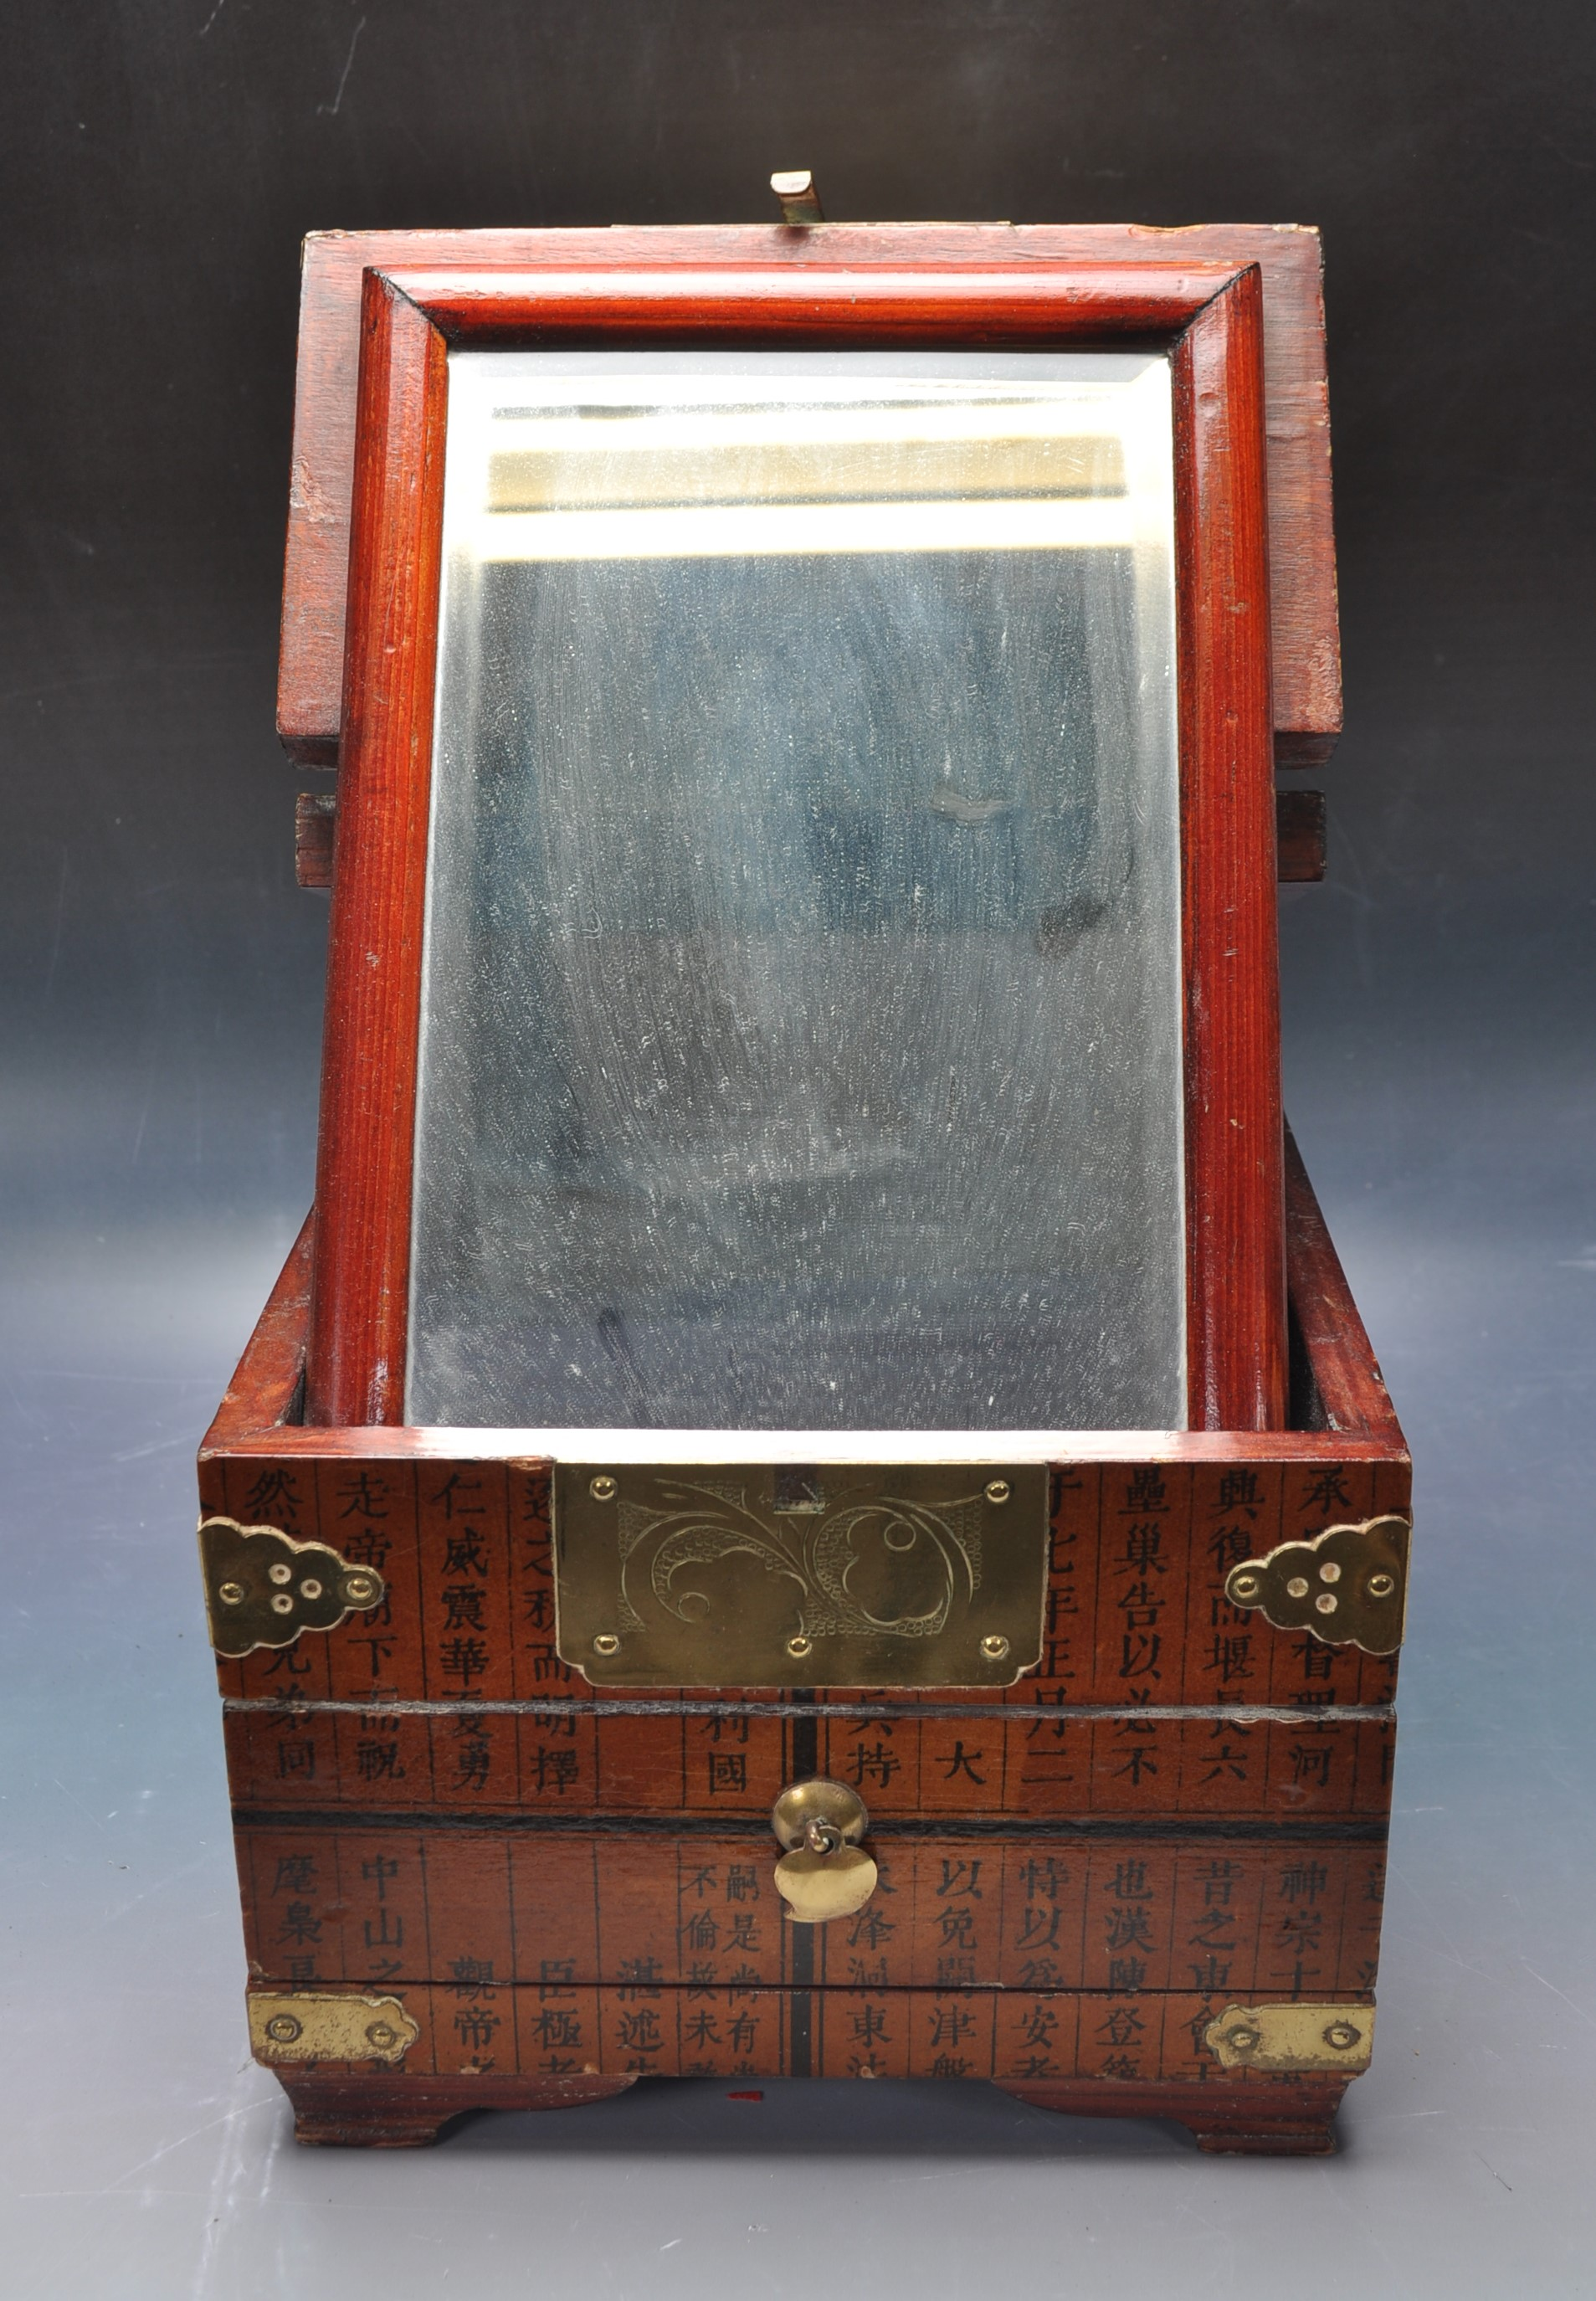 20TH CENTURY CHINESE LACQUER & BRASS BOUND CASKET